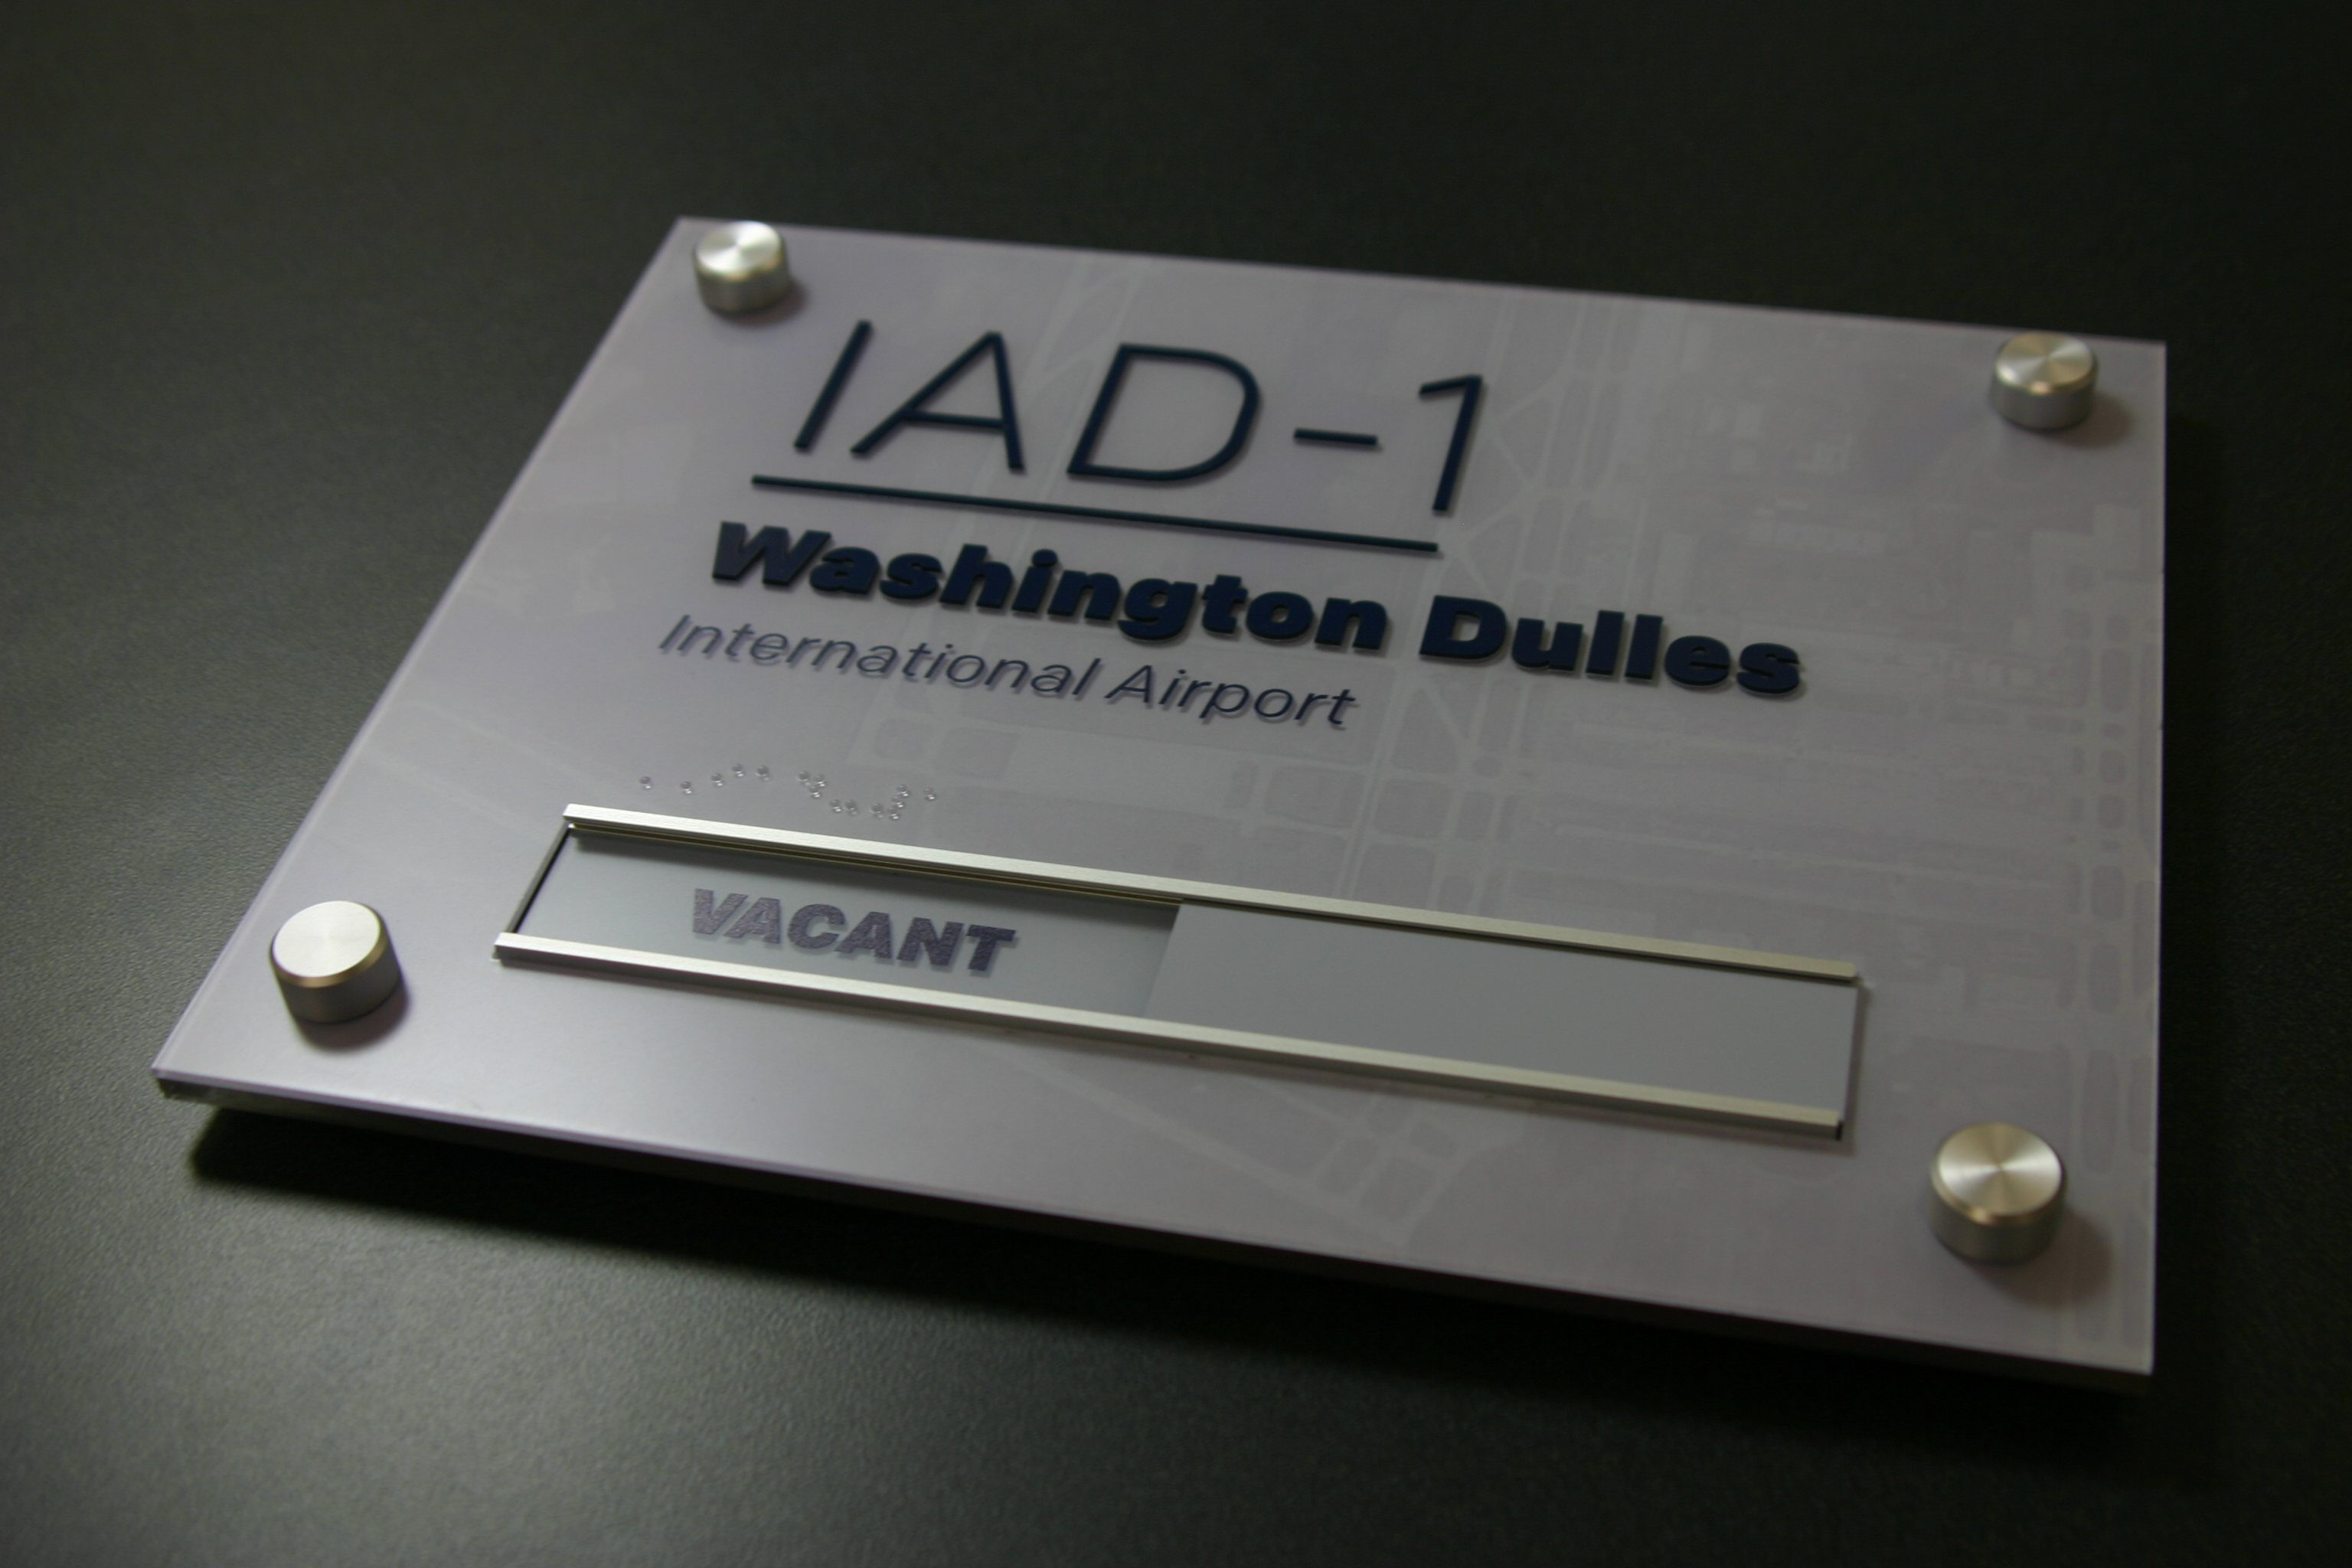 """.125"""" acrylic baseplate with .125"""" acrylic faceplate with subsurface graphics, surface applied raised text, changeable """"vacant/in use"""" sign and decorative standoff hardware."""